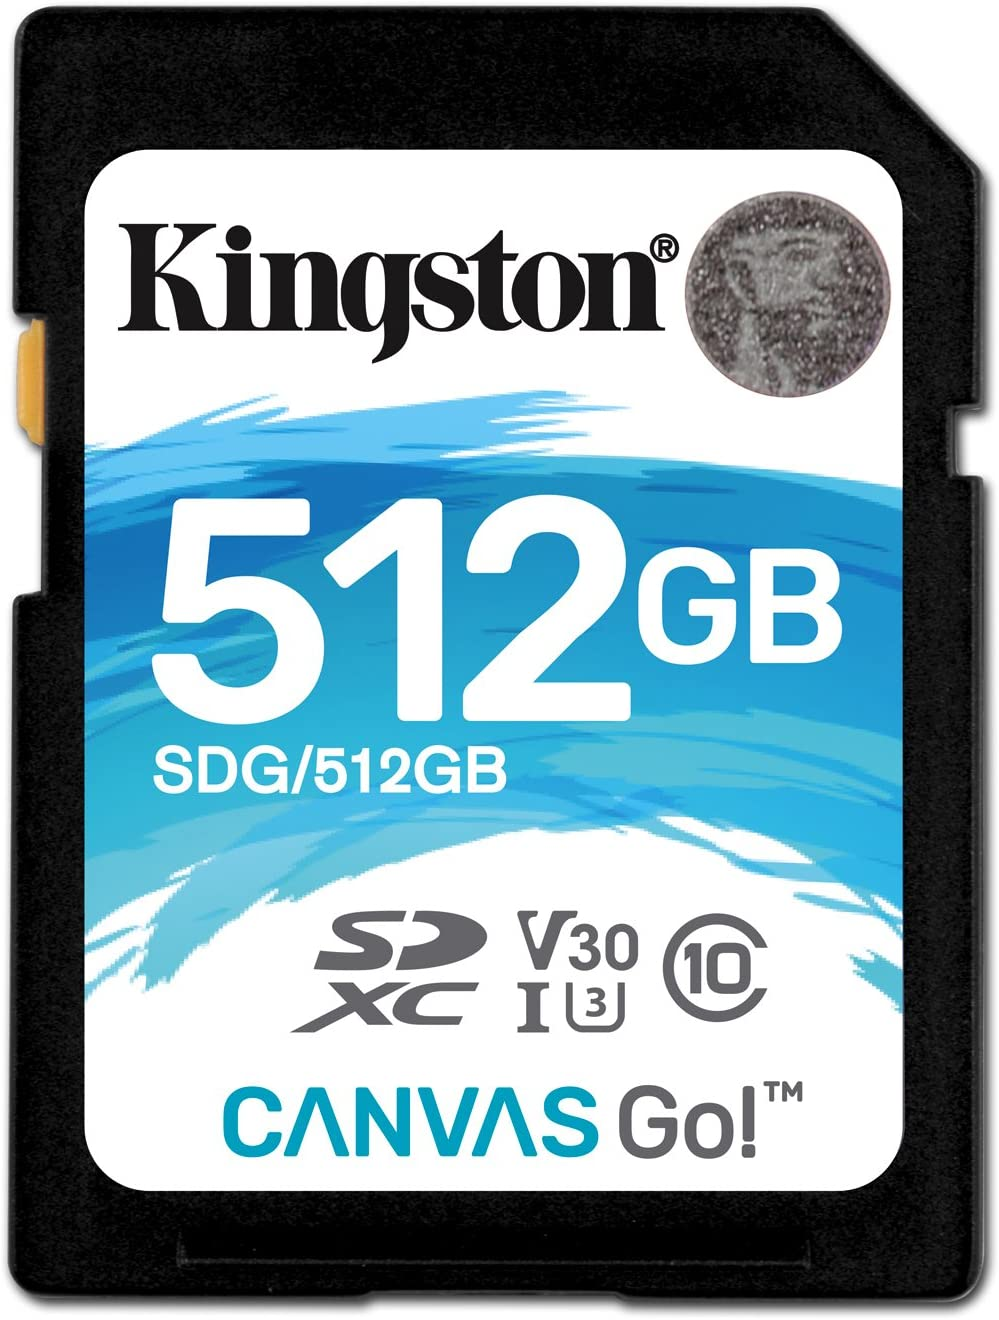 100MBs Works with Kingston Kingston 512GB Xolo Q1000 MicroSDXC Canvas Select Plus Card Verified by SanFlash.